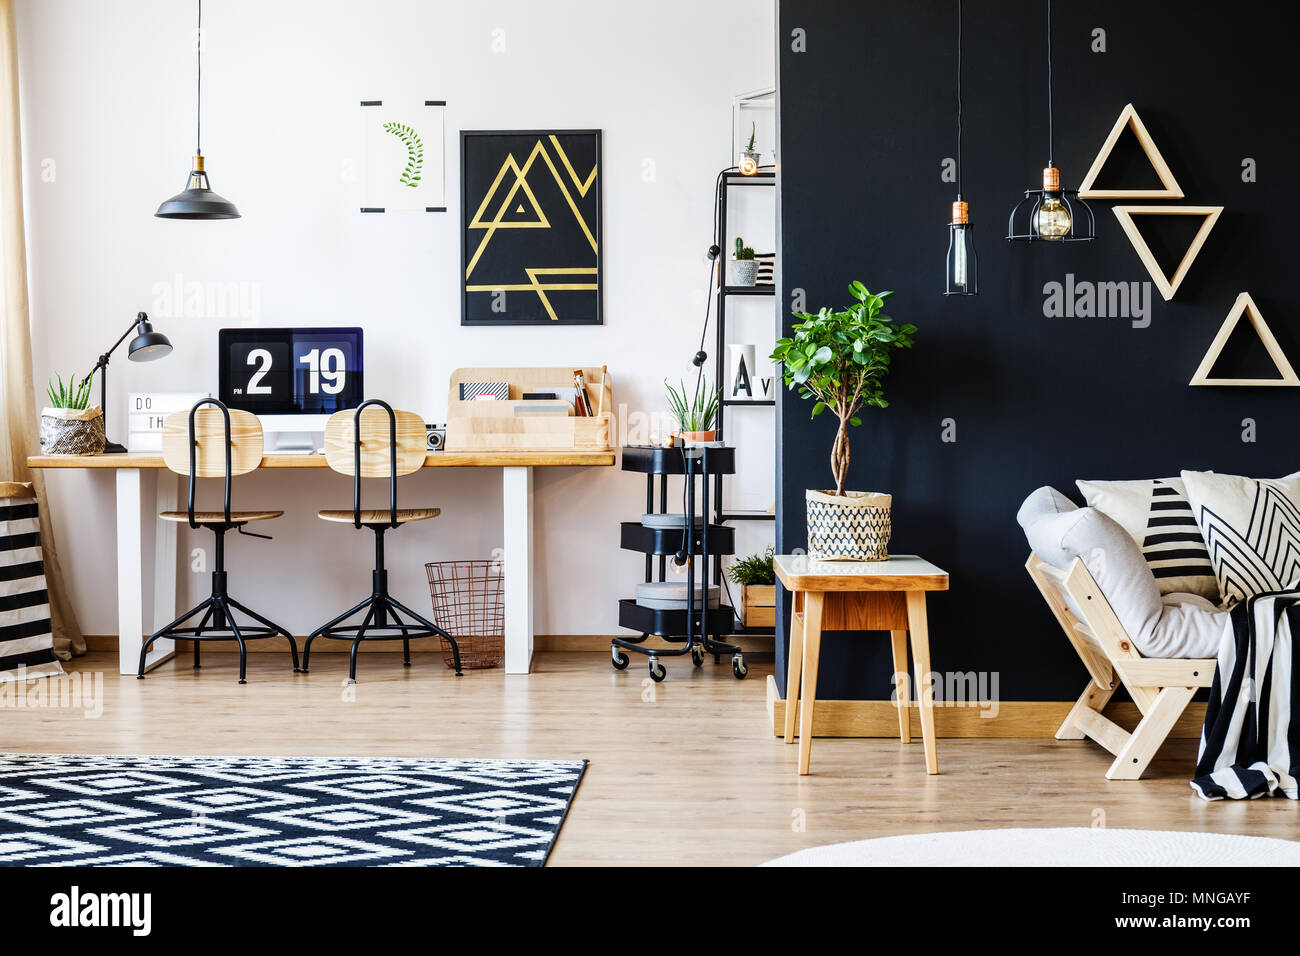 Stylish black and white nordic style open space apartment with wooden furniture, office workspace with desk and computer, and spacious living room wit - Stock Image